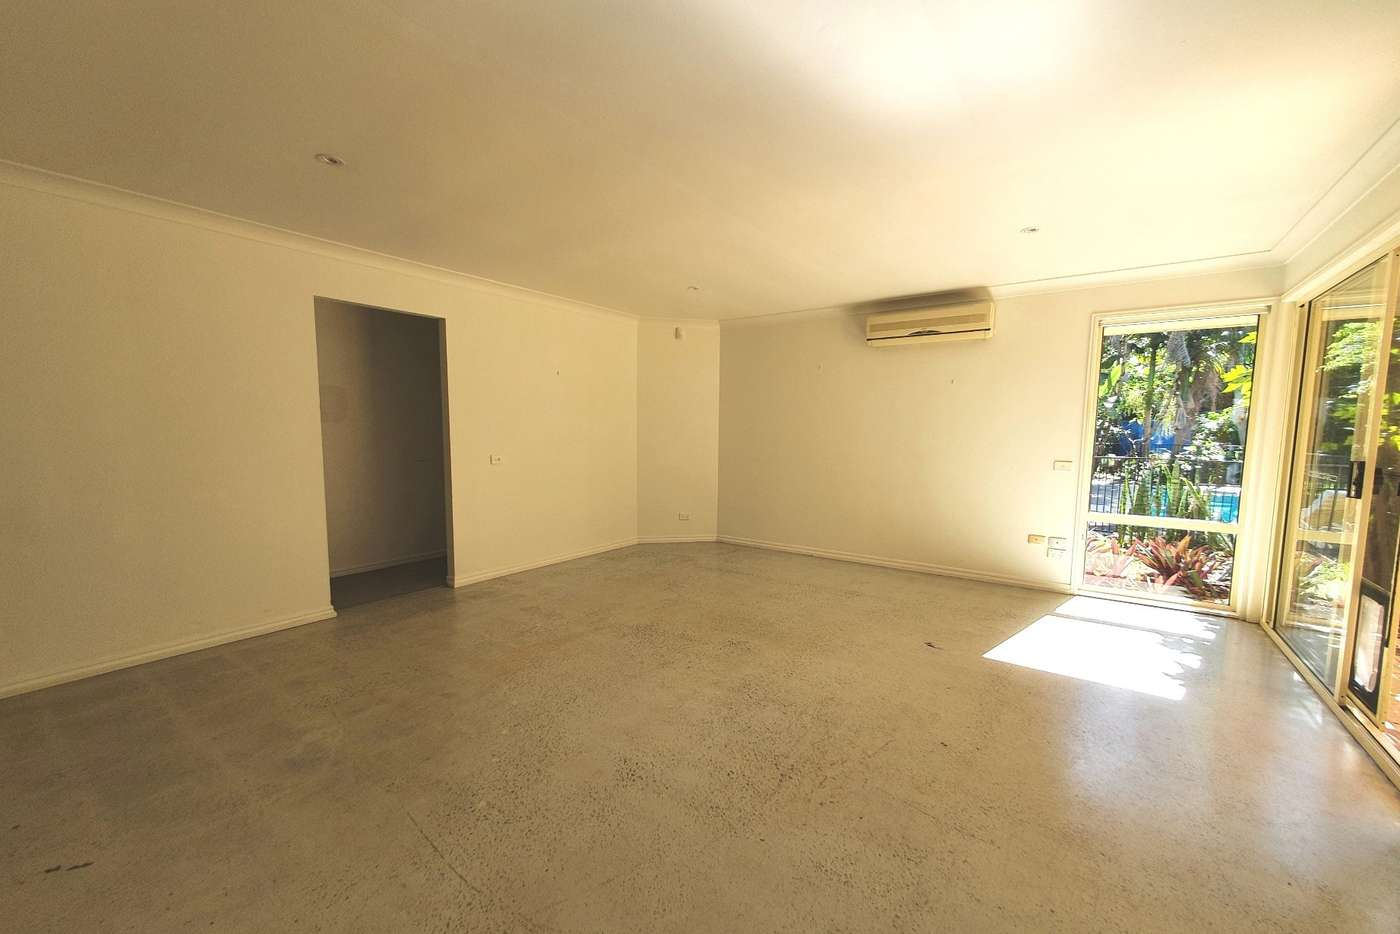 Sixth view of Homely house listing, 83 McGettigans Lane, Ewingsdale NSW 2481